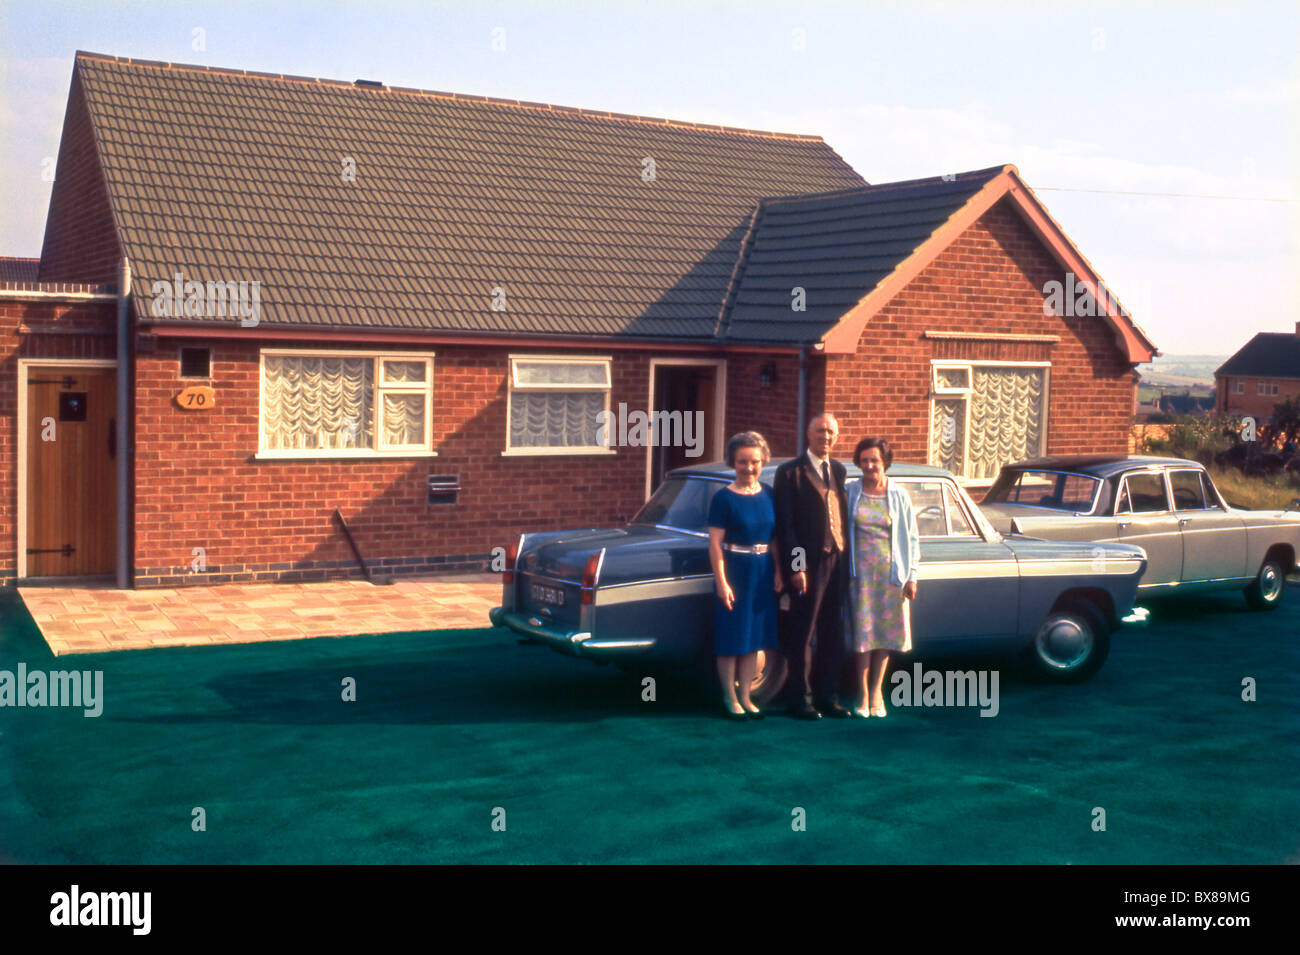 A middle class elderly couple and friend stand outside their newly built bungalow and new cars for a family portrait. - Stock Image